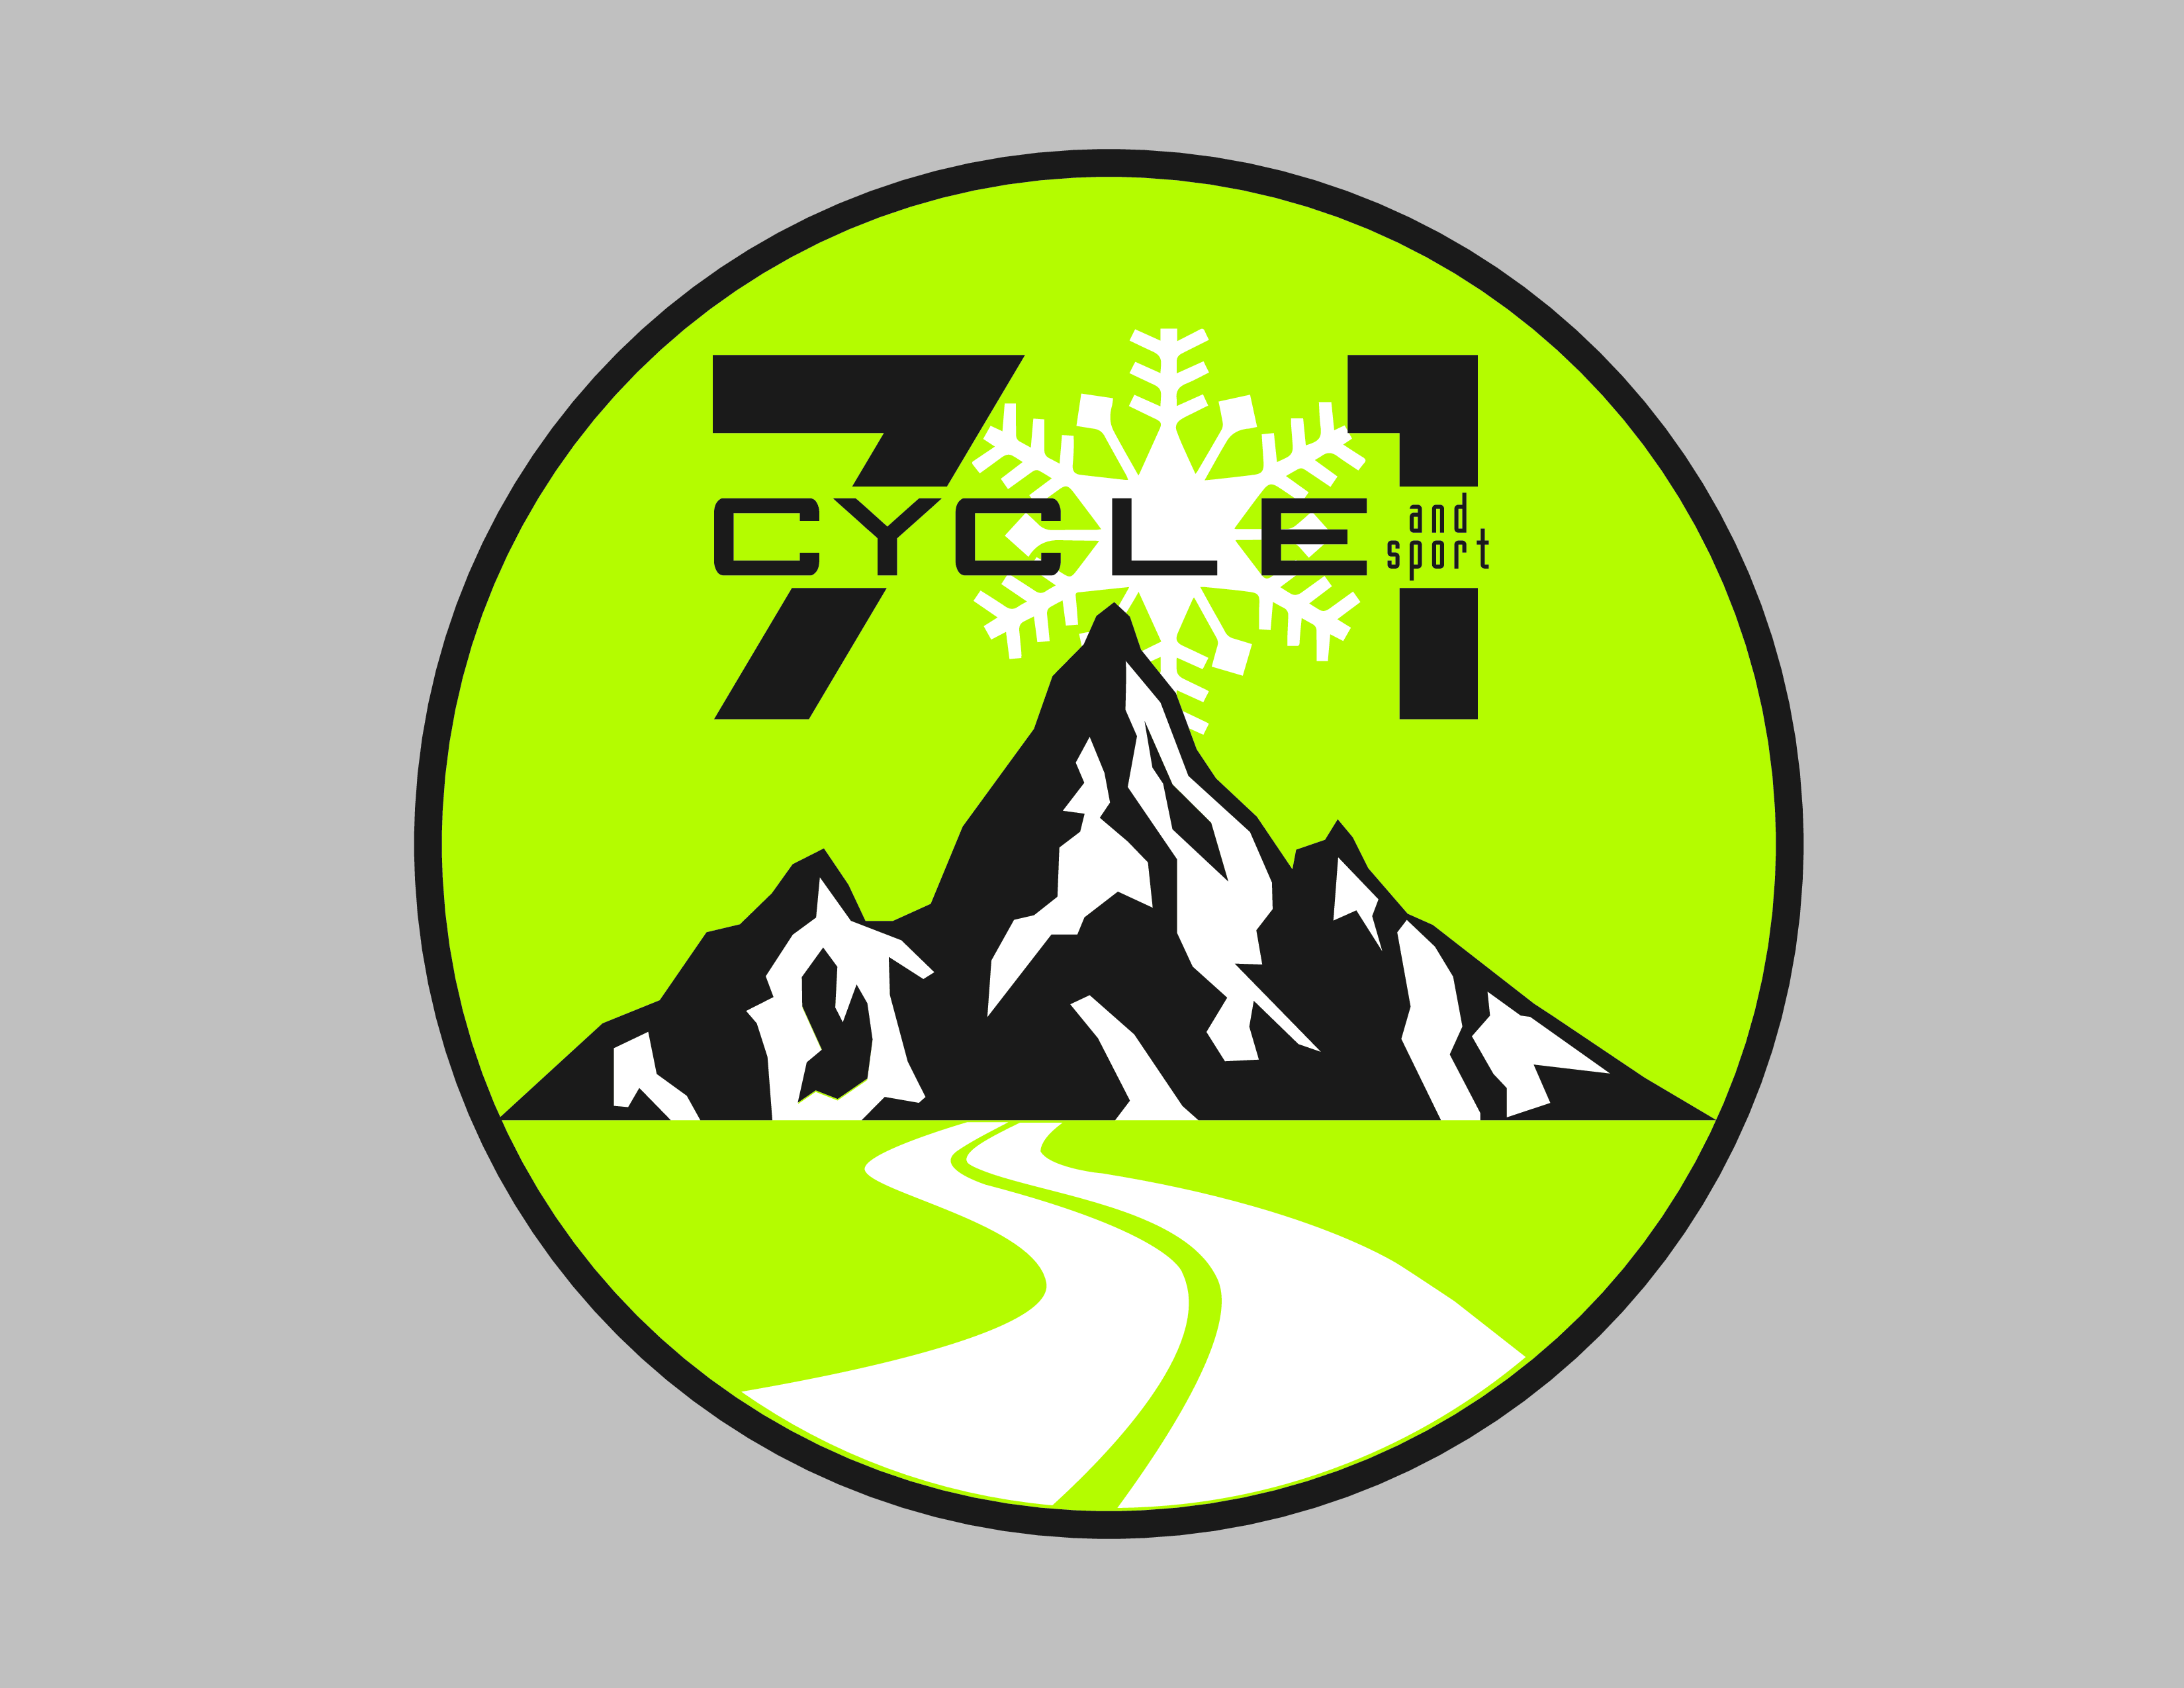 701 Cycle and Sport